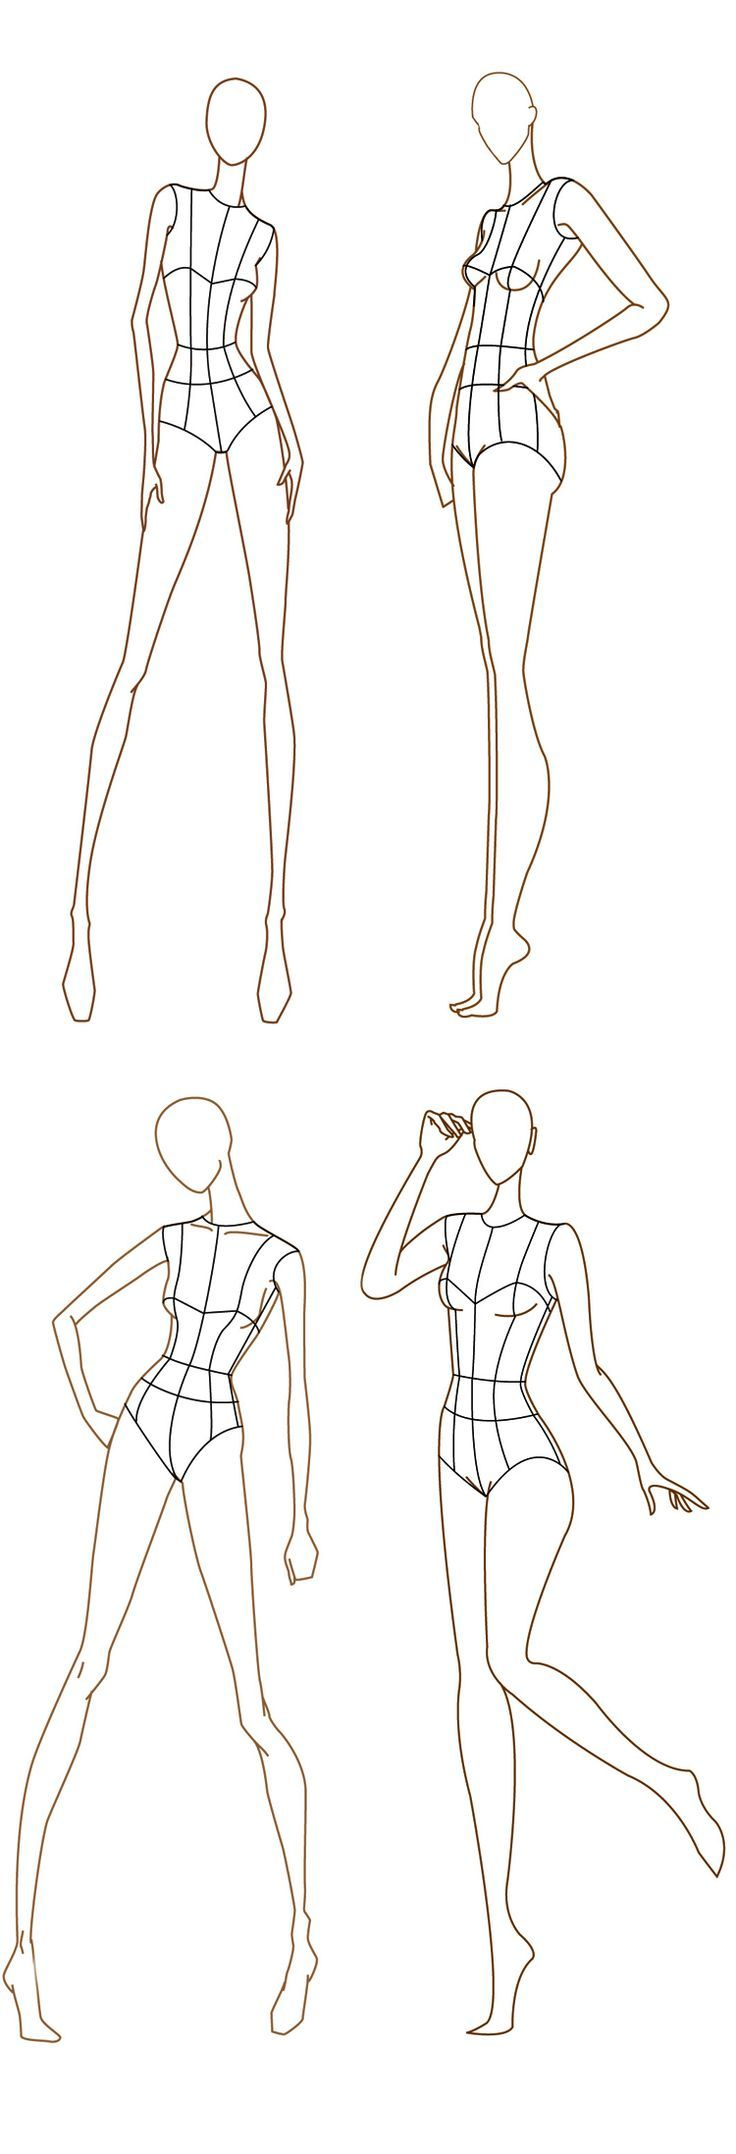 nice Free download - Fashion design templates. more here www.designersnexu...... by http://www.polyvorebydana.us/fashion-sketches/free-download-fashion-design-templates-more-here-www-designersnexu/